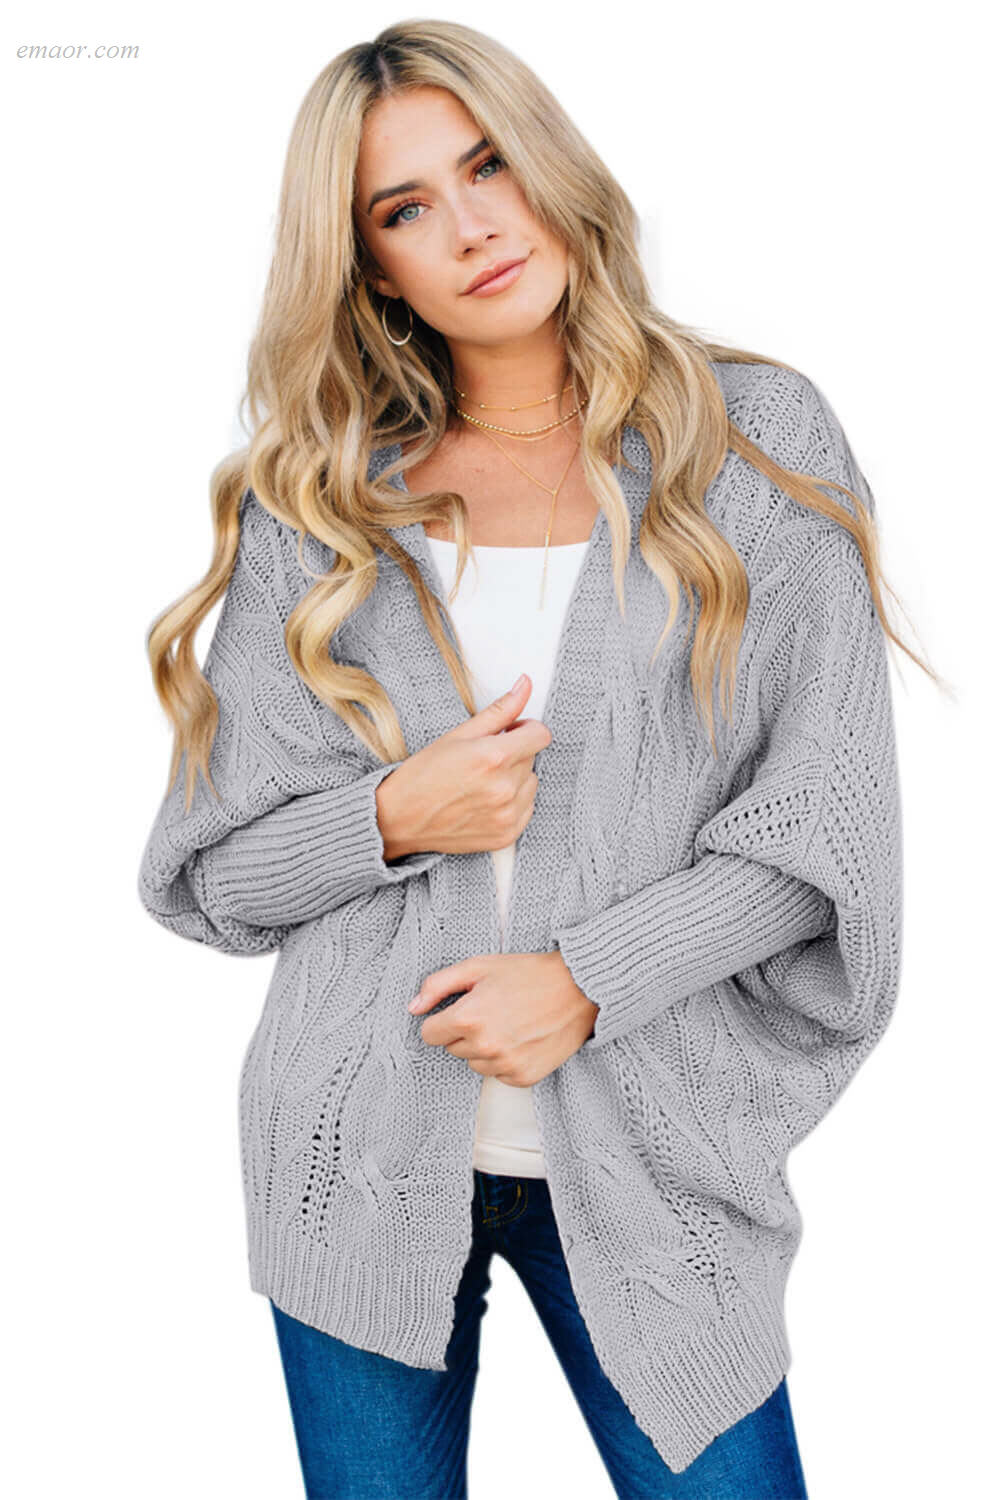 Ladies Junior Outerwear Outwear Women's Cardigan Sweater Amazon Women's Outerwear